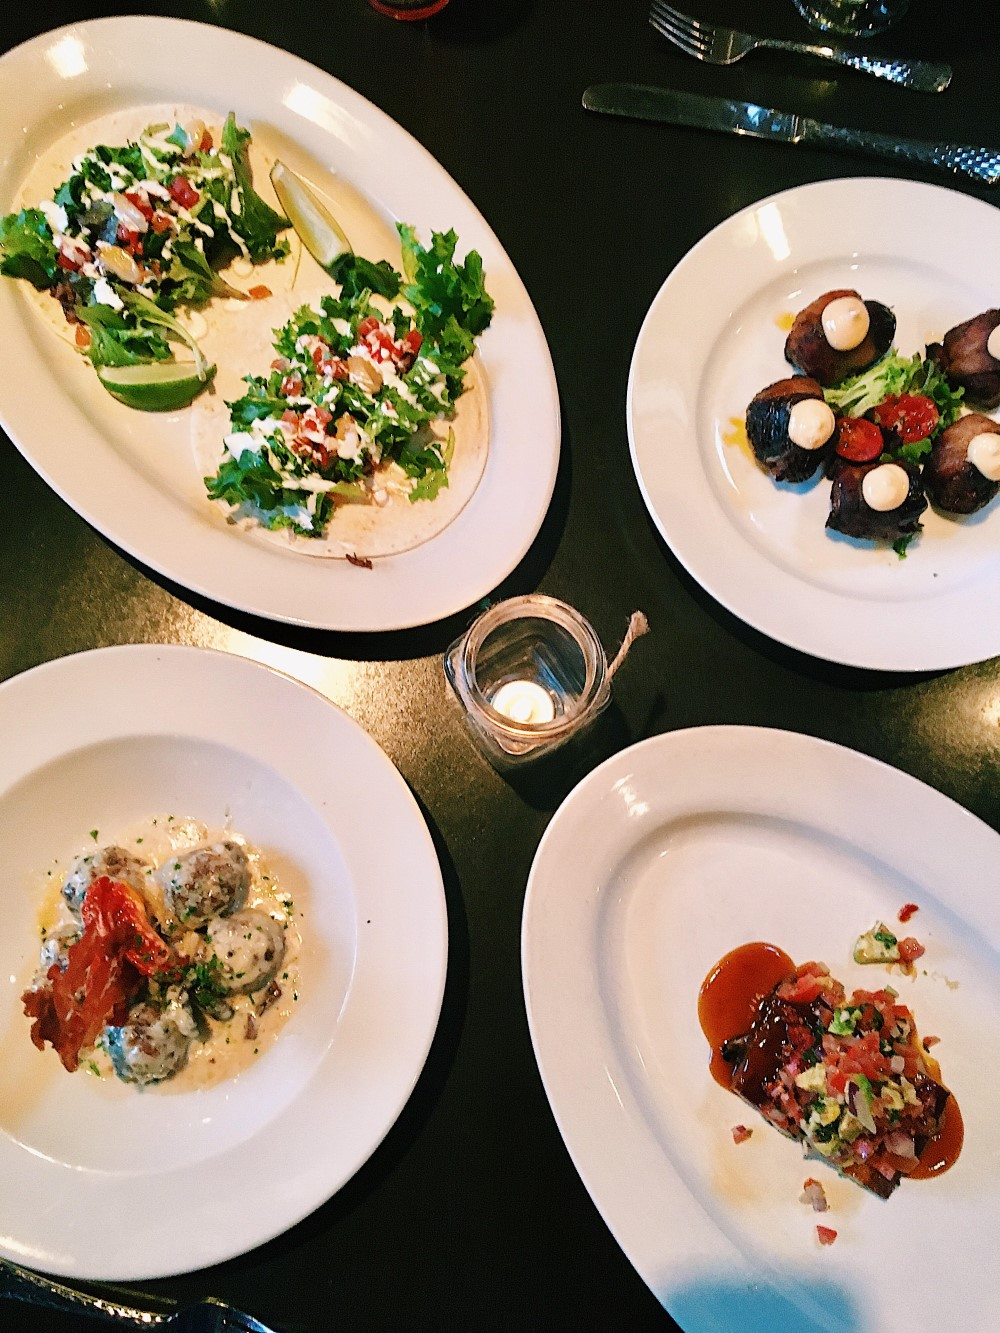 Plates of food from Rustica